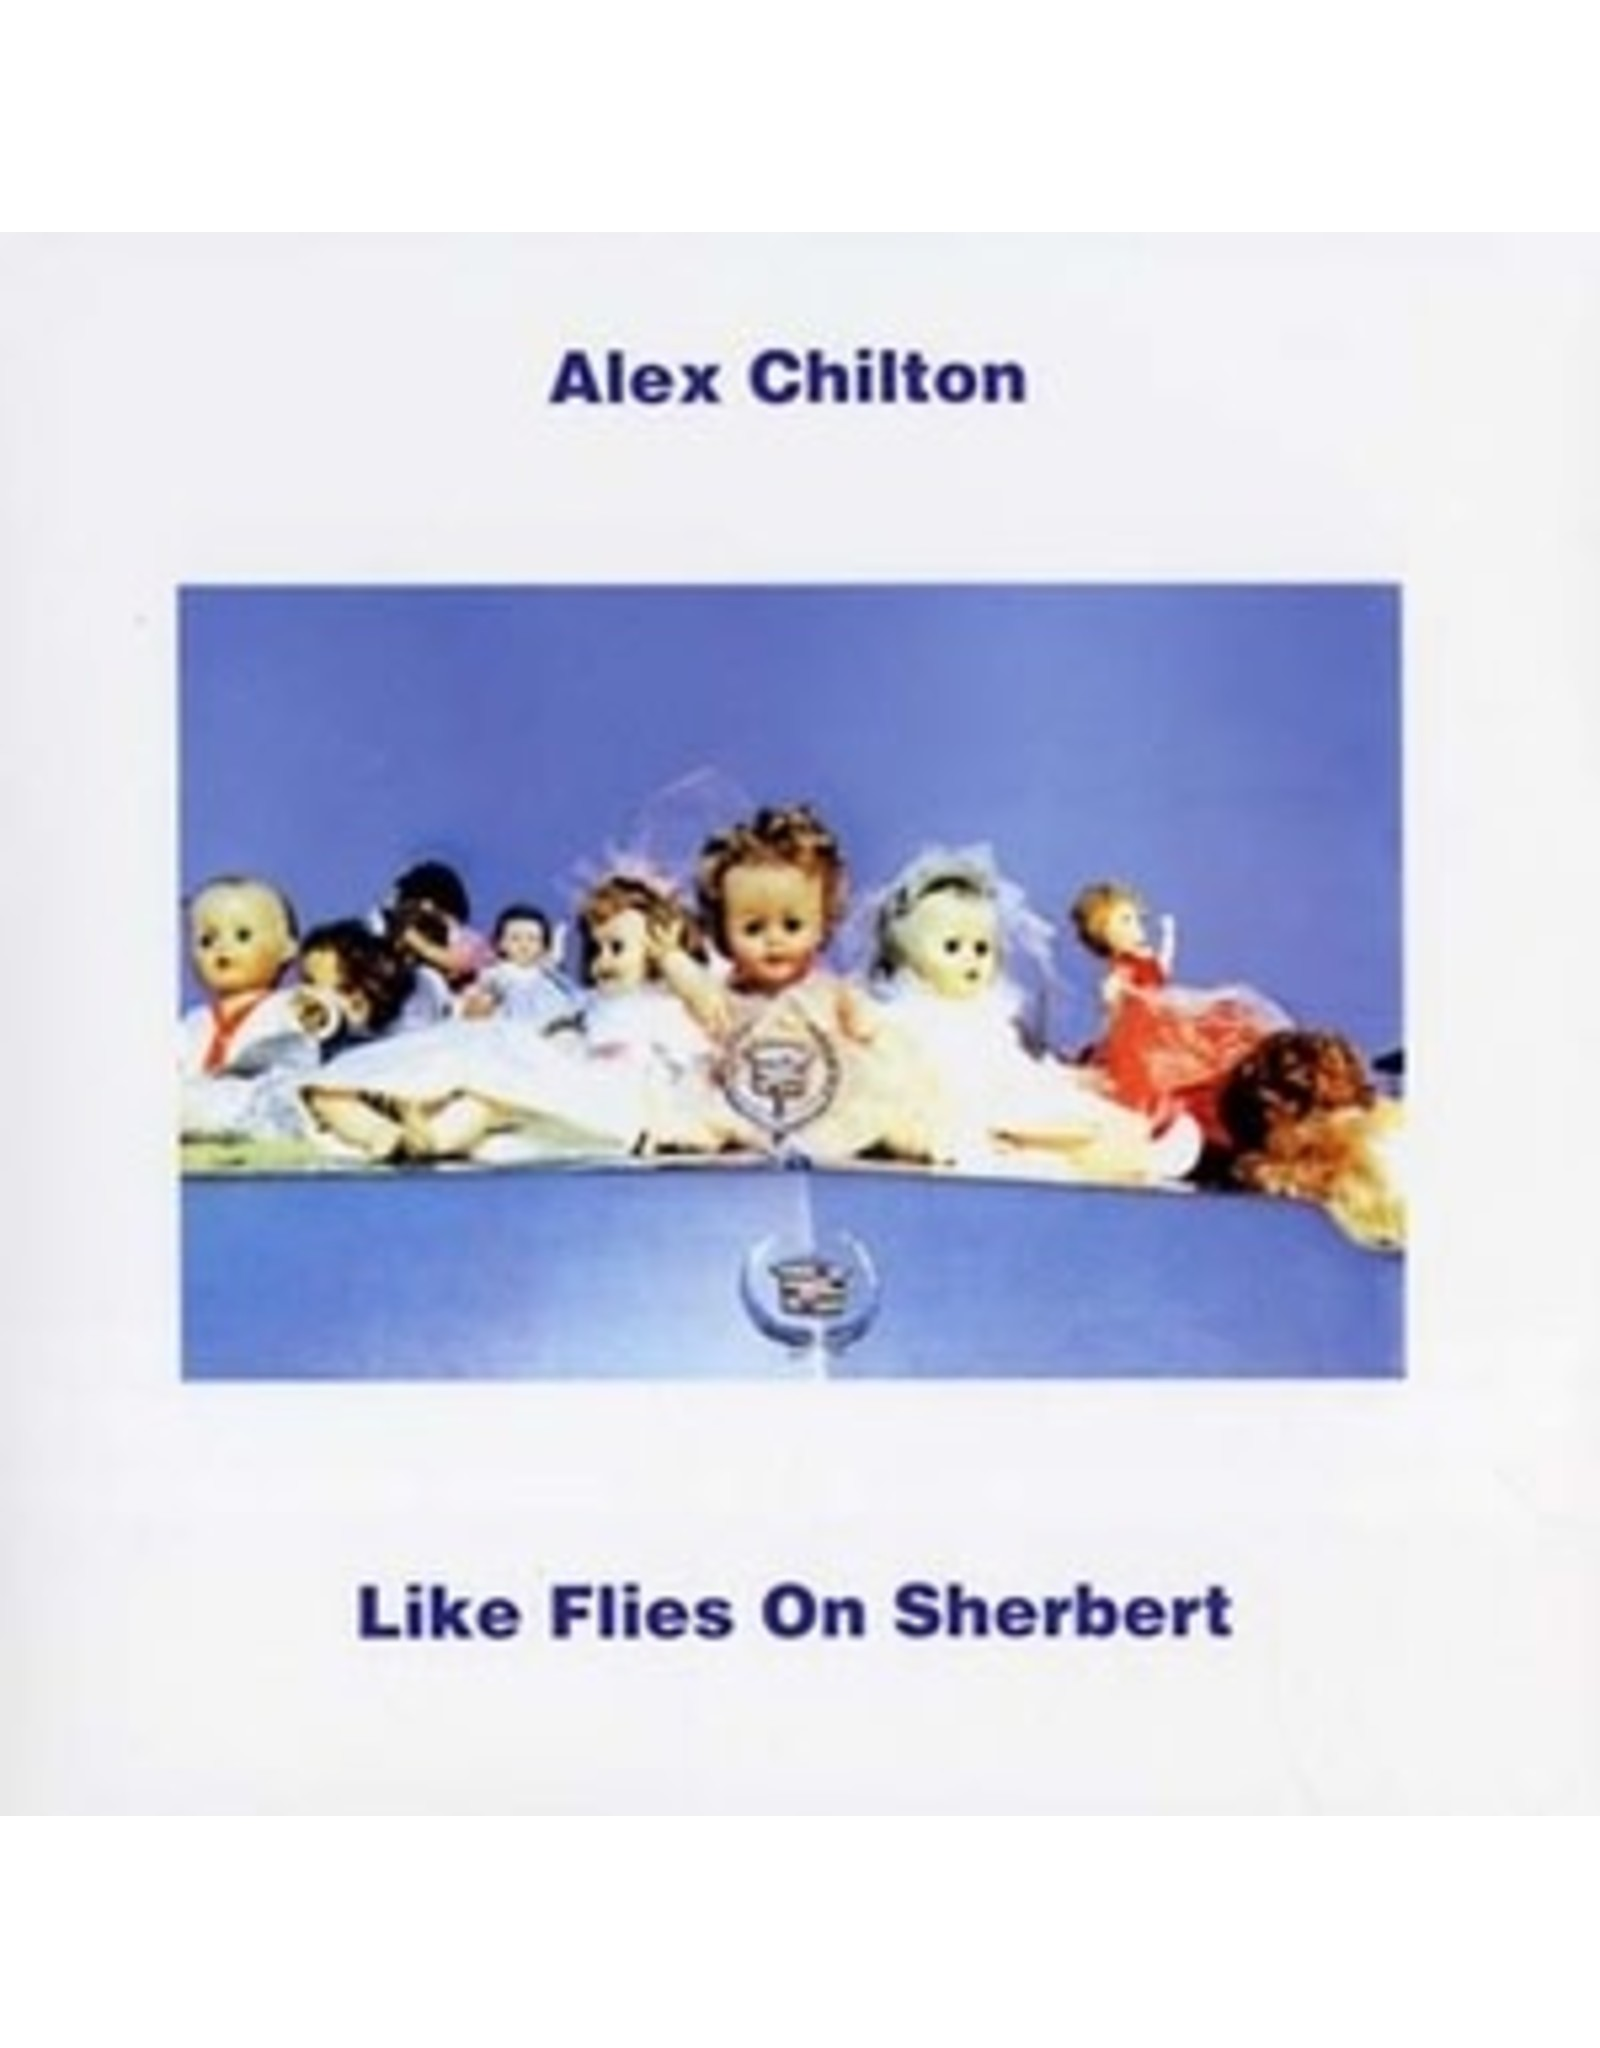 New Vinyl Alex Chilton - Like Flies On Sherbert (Clear) LP